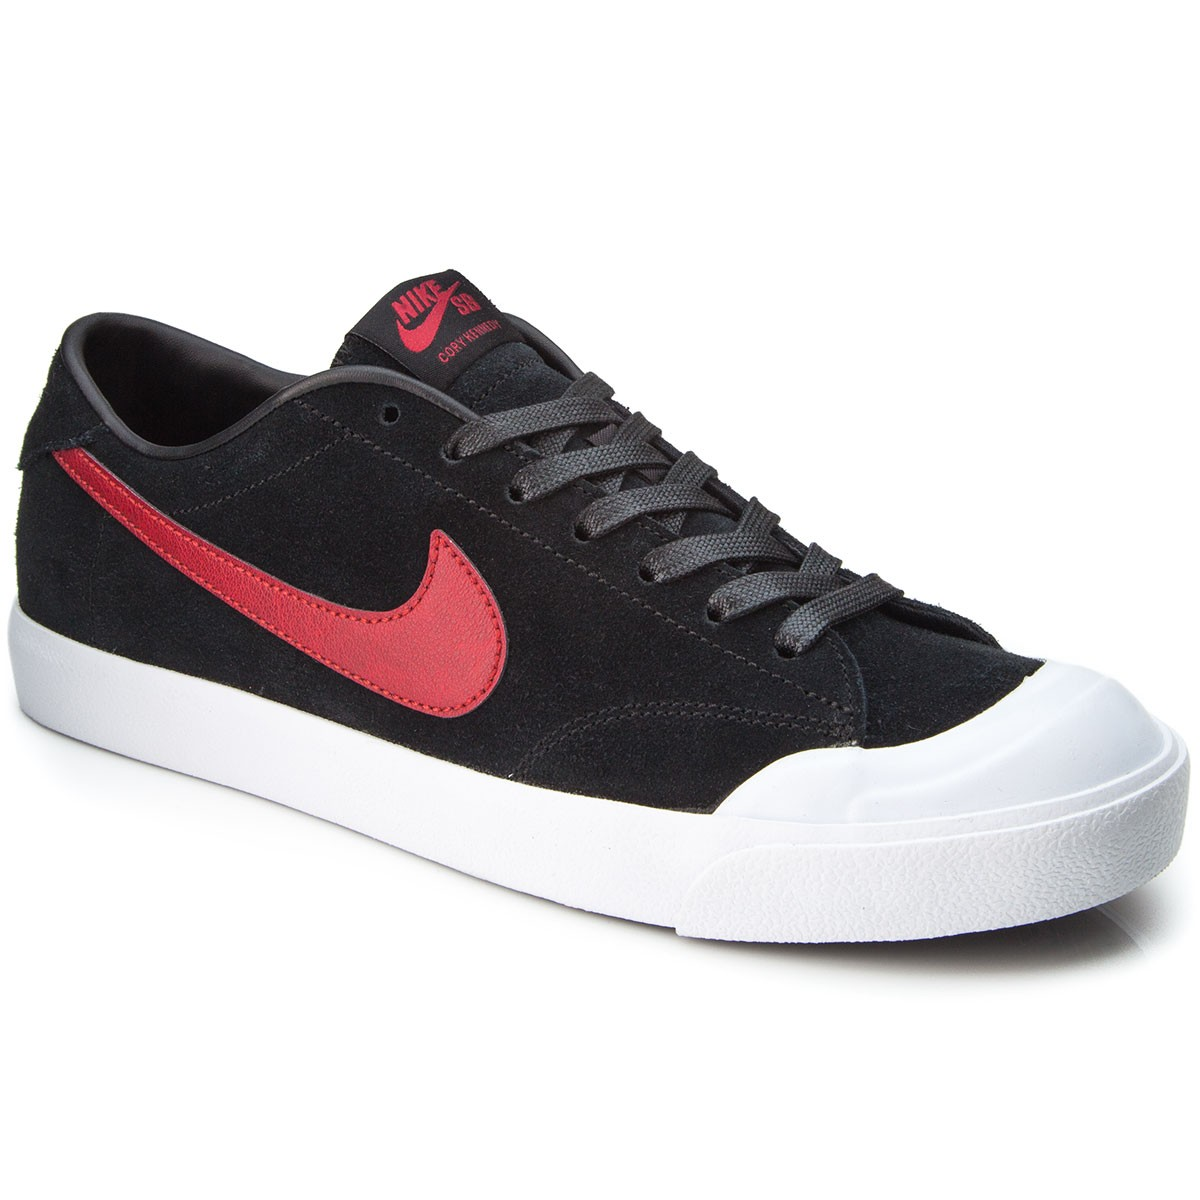 fc7e684d1ef nike-zoom-all-court-ck-shoes-black-white-red-1.1506664428.jpg